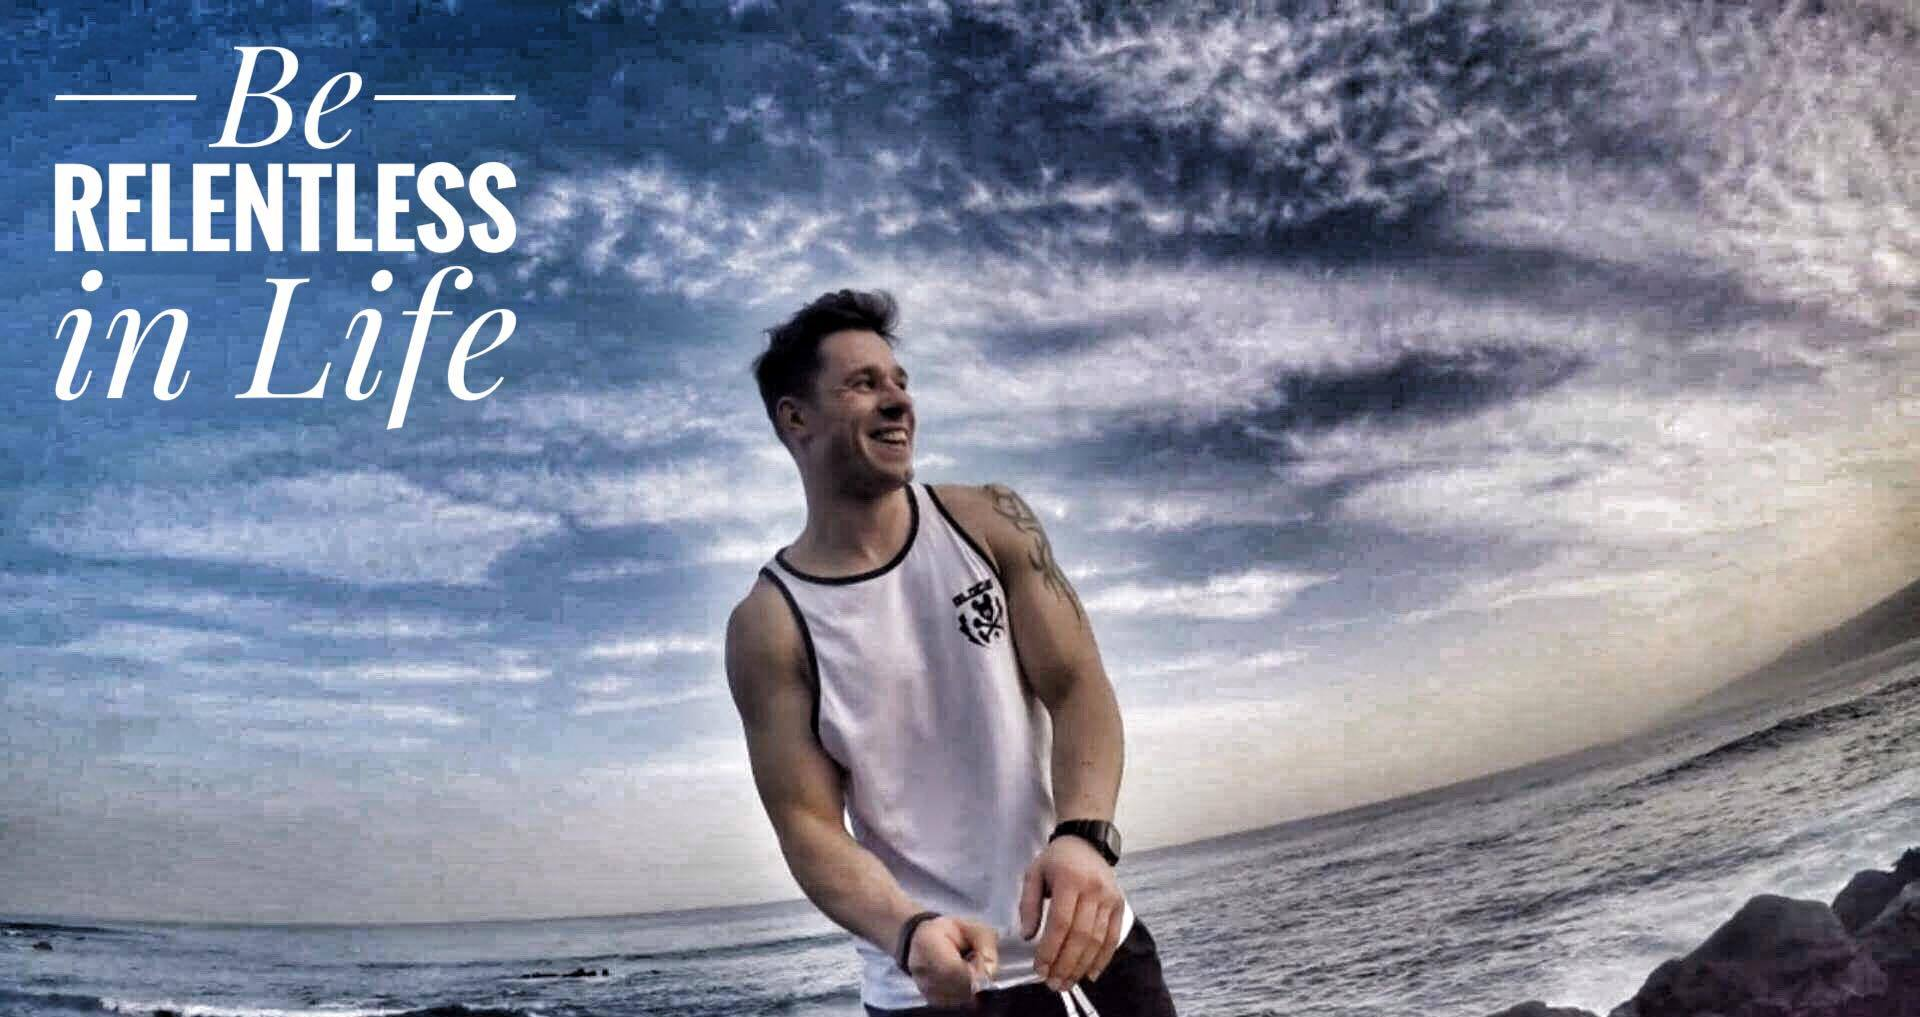 Be relentless in life body by finn glenn ireland personal trainer fitness coach kenmare dublin weigh